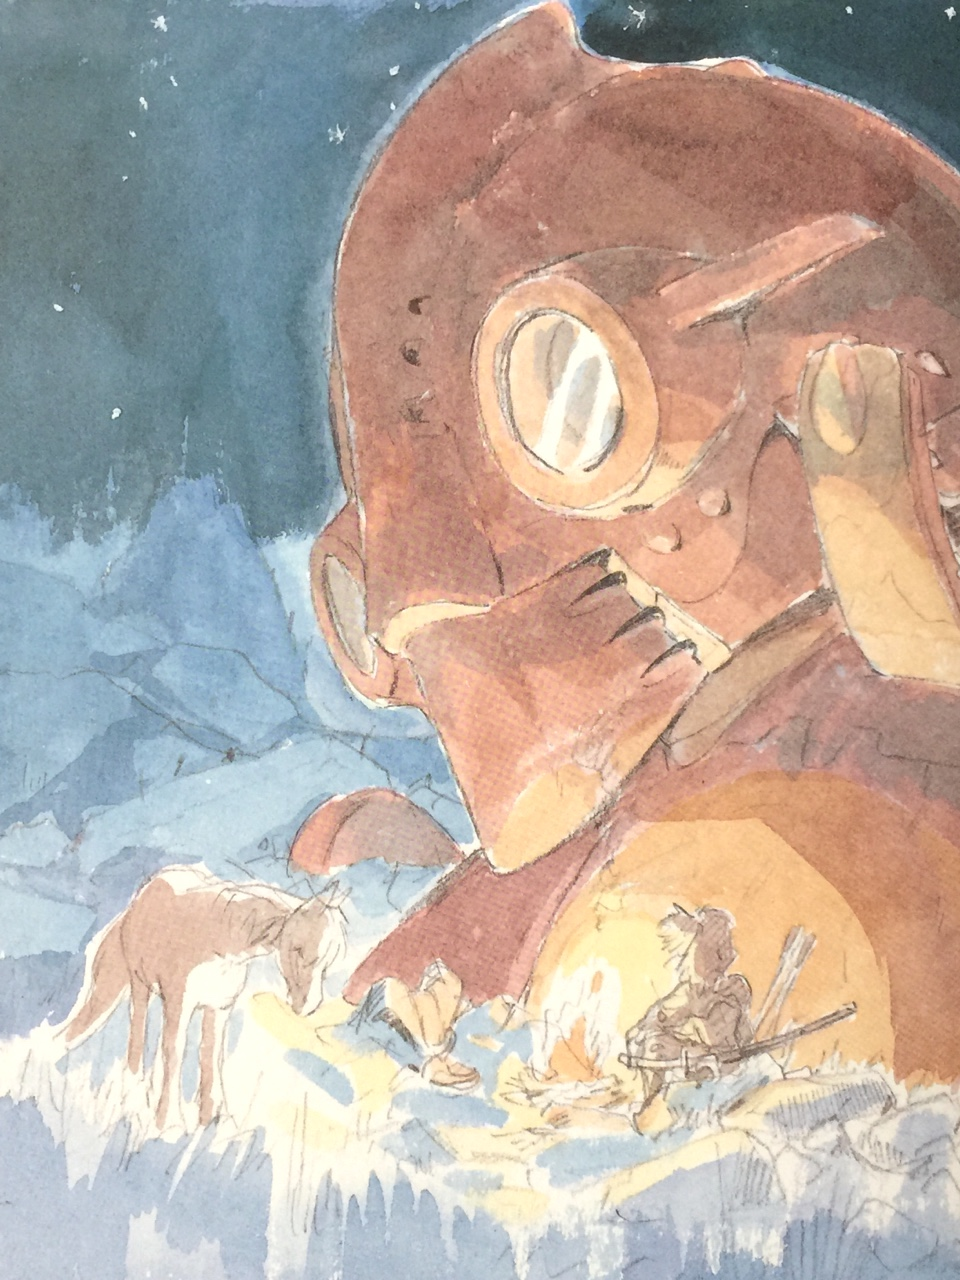 Hayao-Miyazaki-The-Art-of-Nausica-Of-The-Valley-Of-The-Wind-Watercolor-Impressions-nausicaa-of-the-valley-of-the-wind-39115018-960-1280.jpg